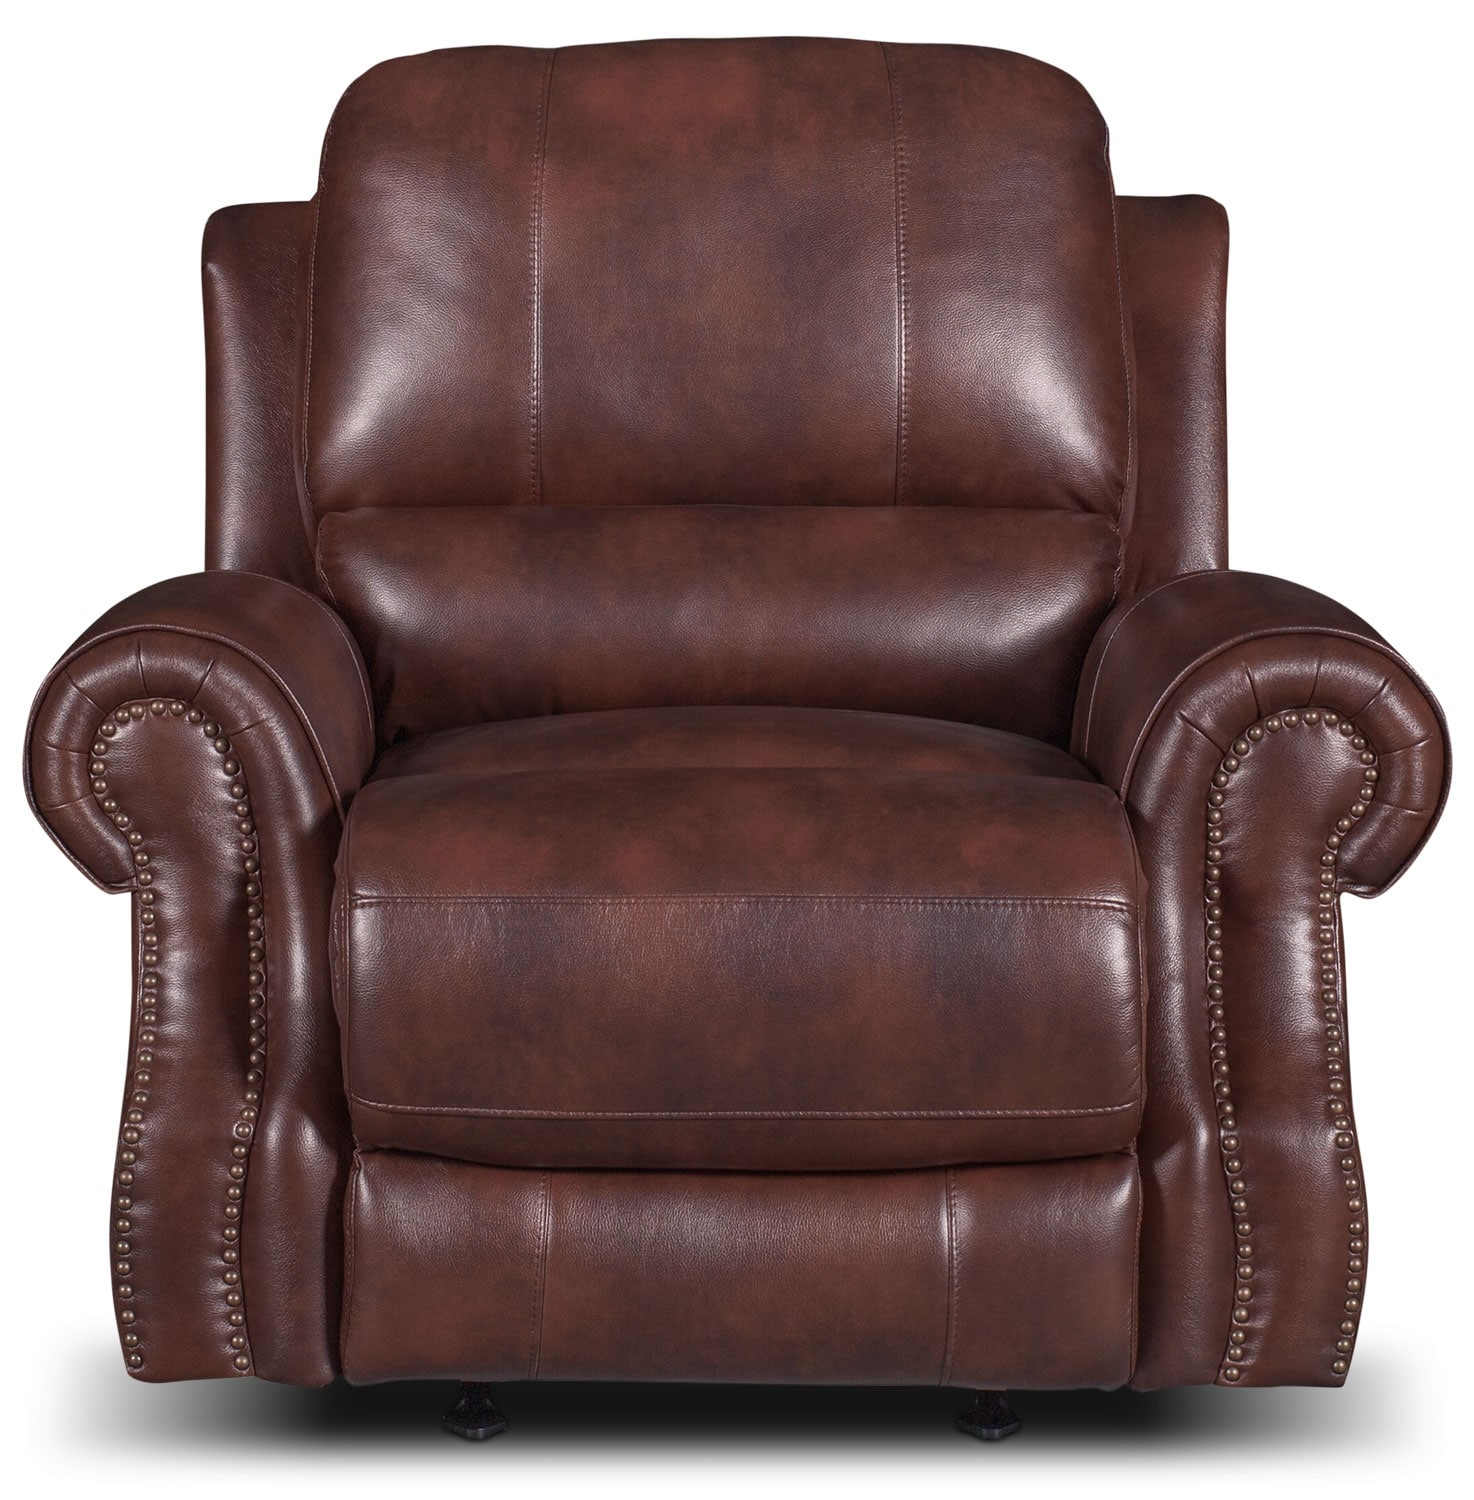 Living Room Furniture - Magnum Leather-Look Fabric Reclining Chair – Brown